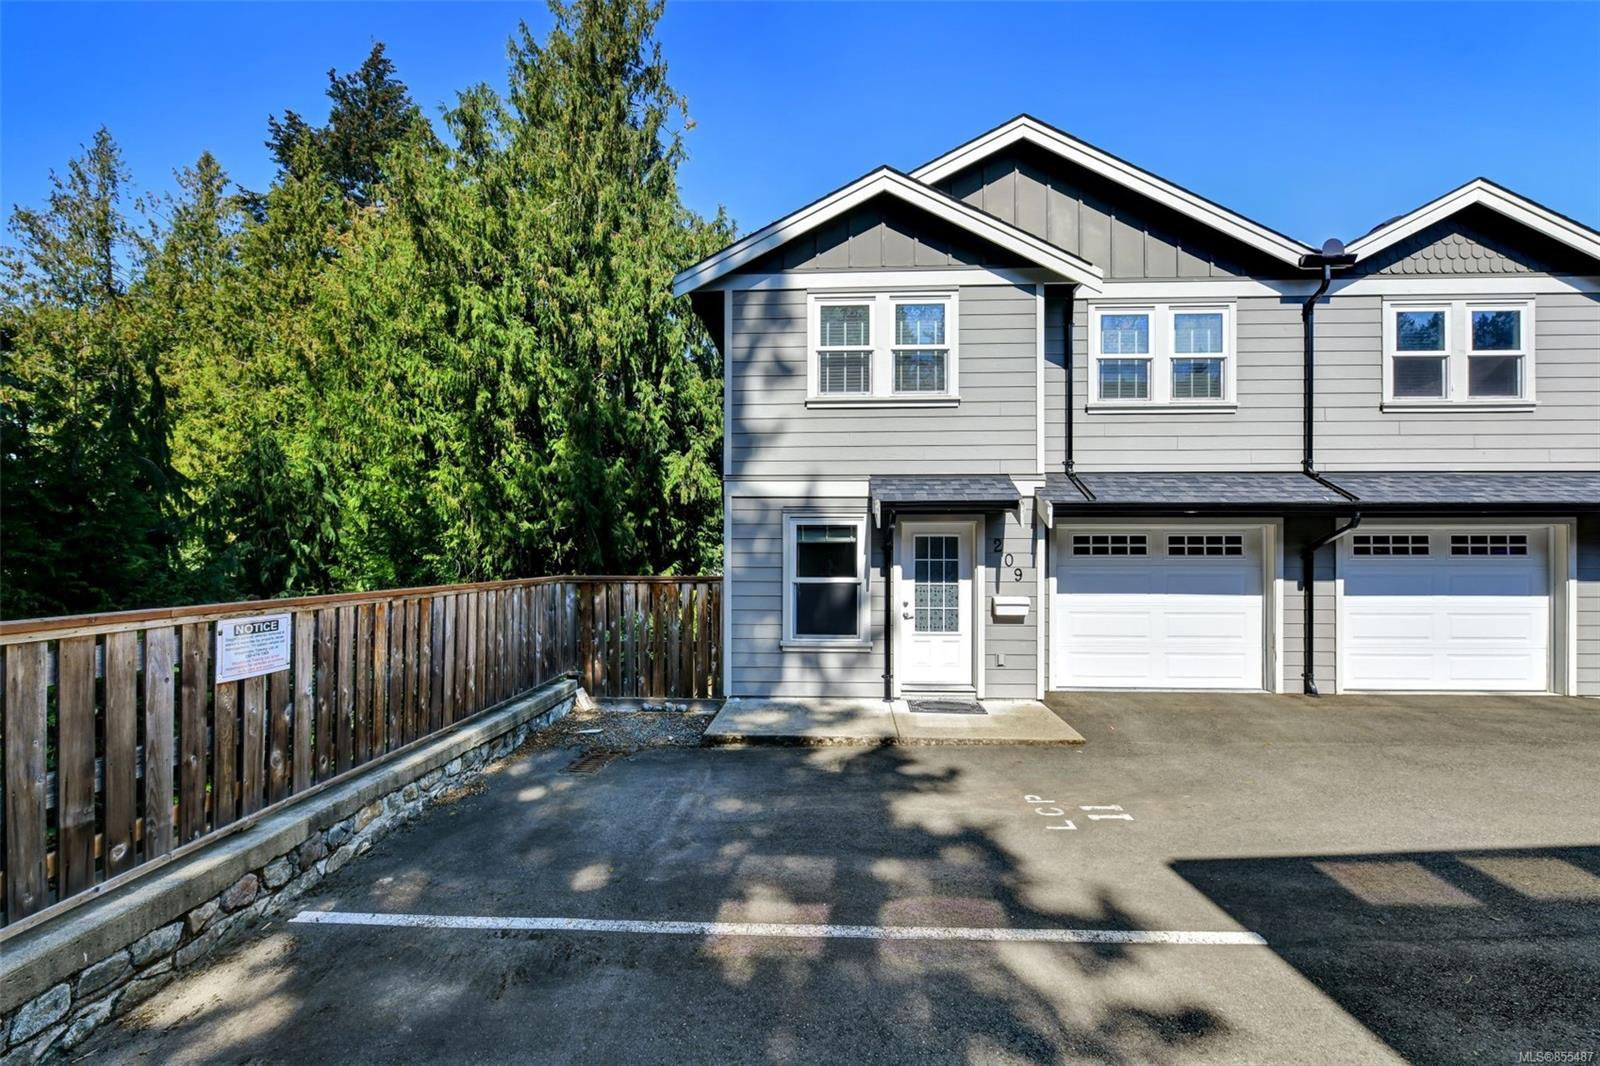 Main Photo: 209 954 Walfred Rd in : La Walfred Row/Townhouse for sale (Langford)  : MLS®# 855487